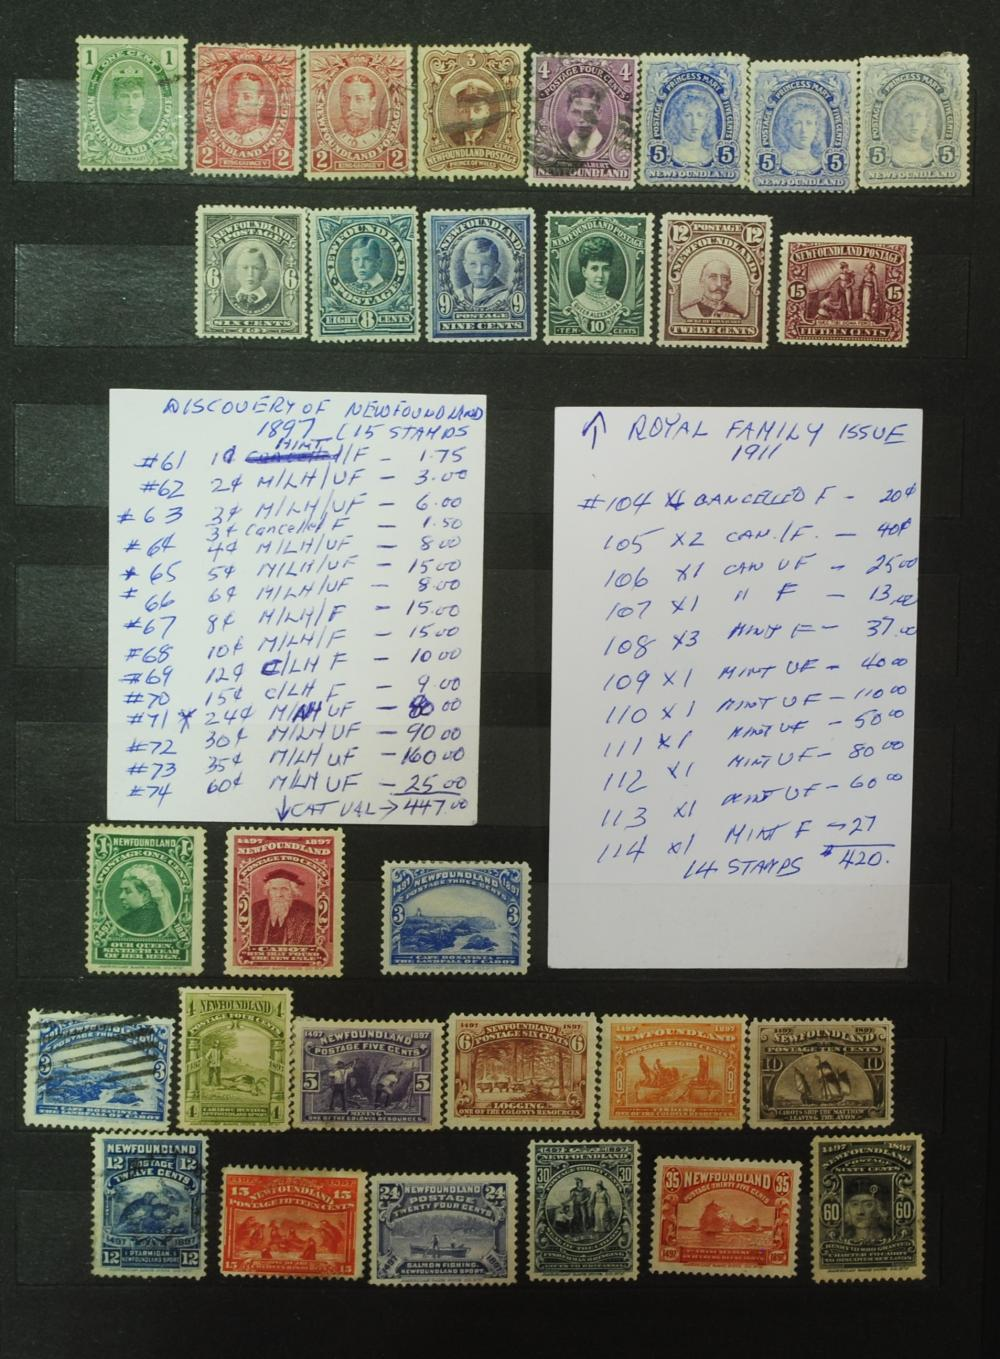 Canada Newfoundland Stamp Collection 1